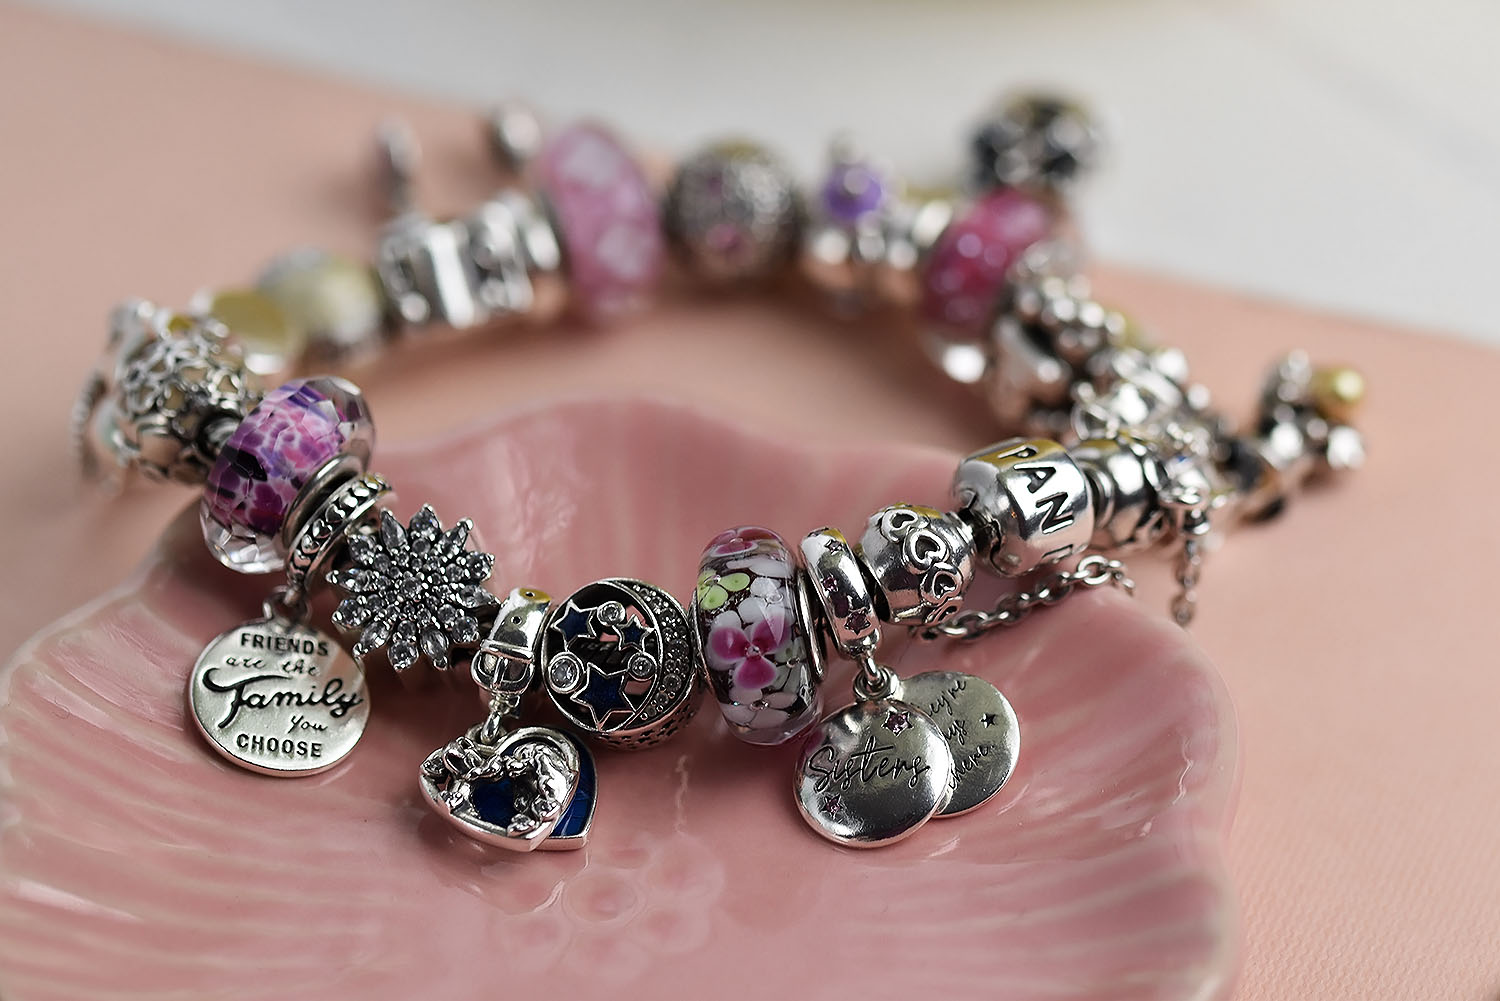 My current silver jewellery favourites | Pandora Bracelet and Charms